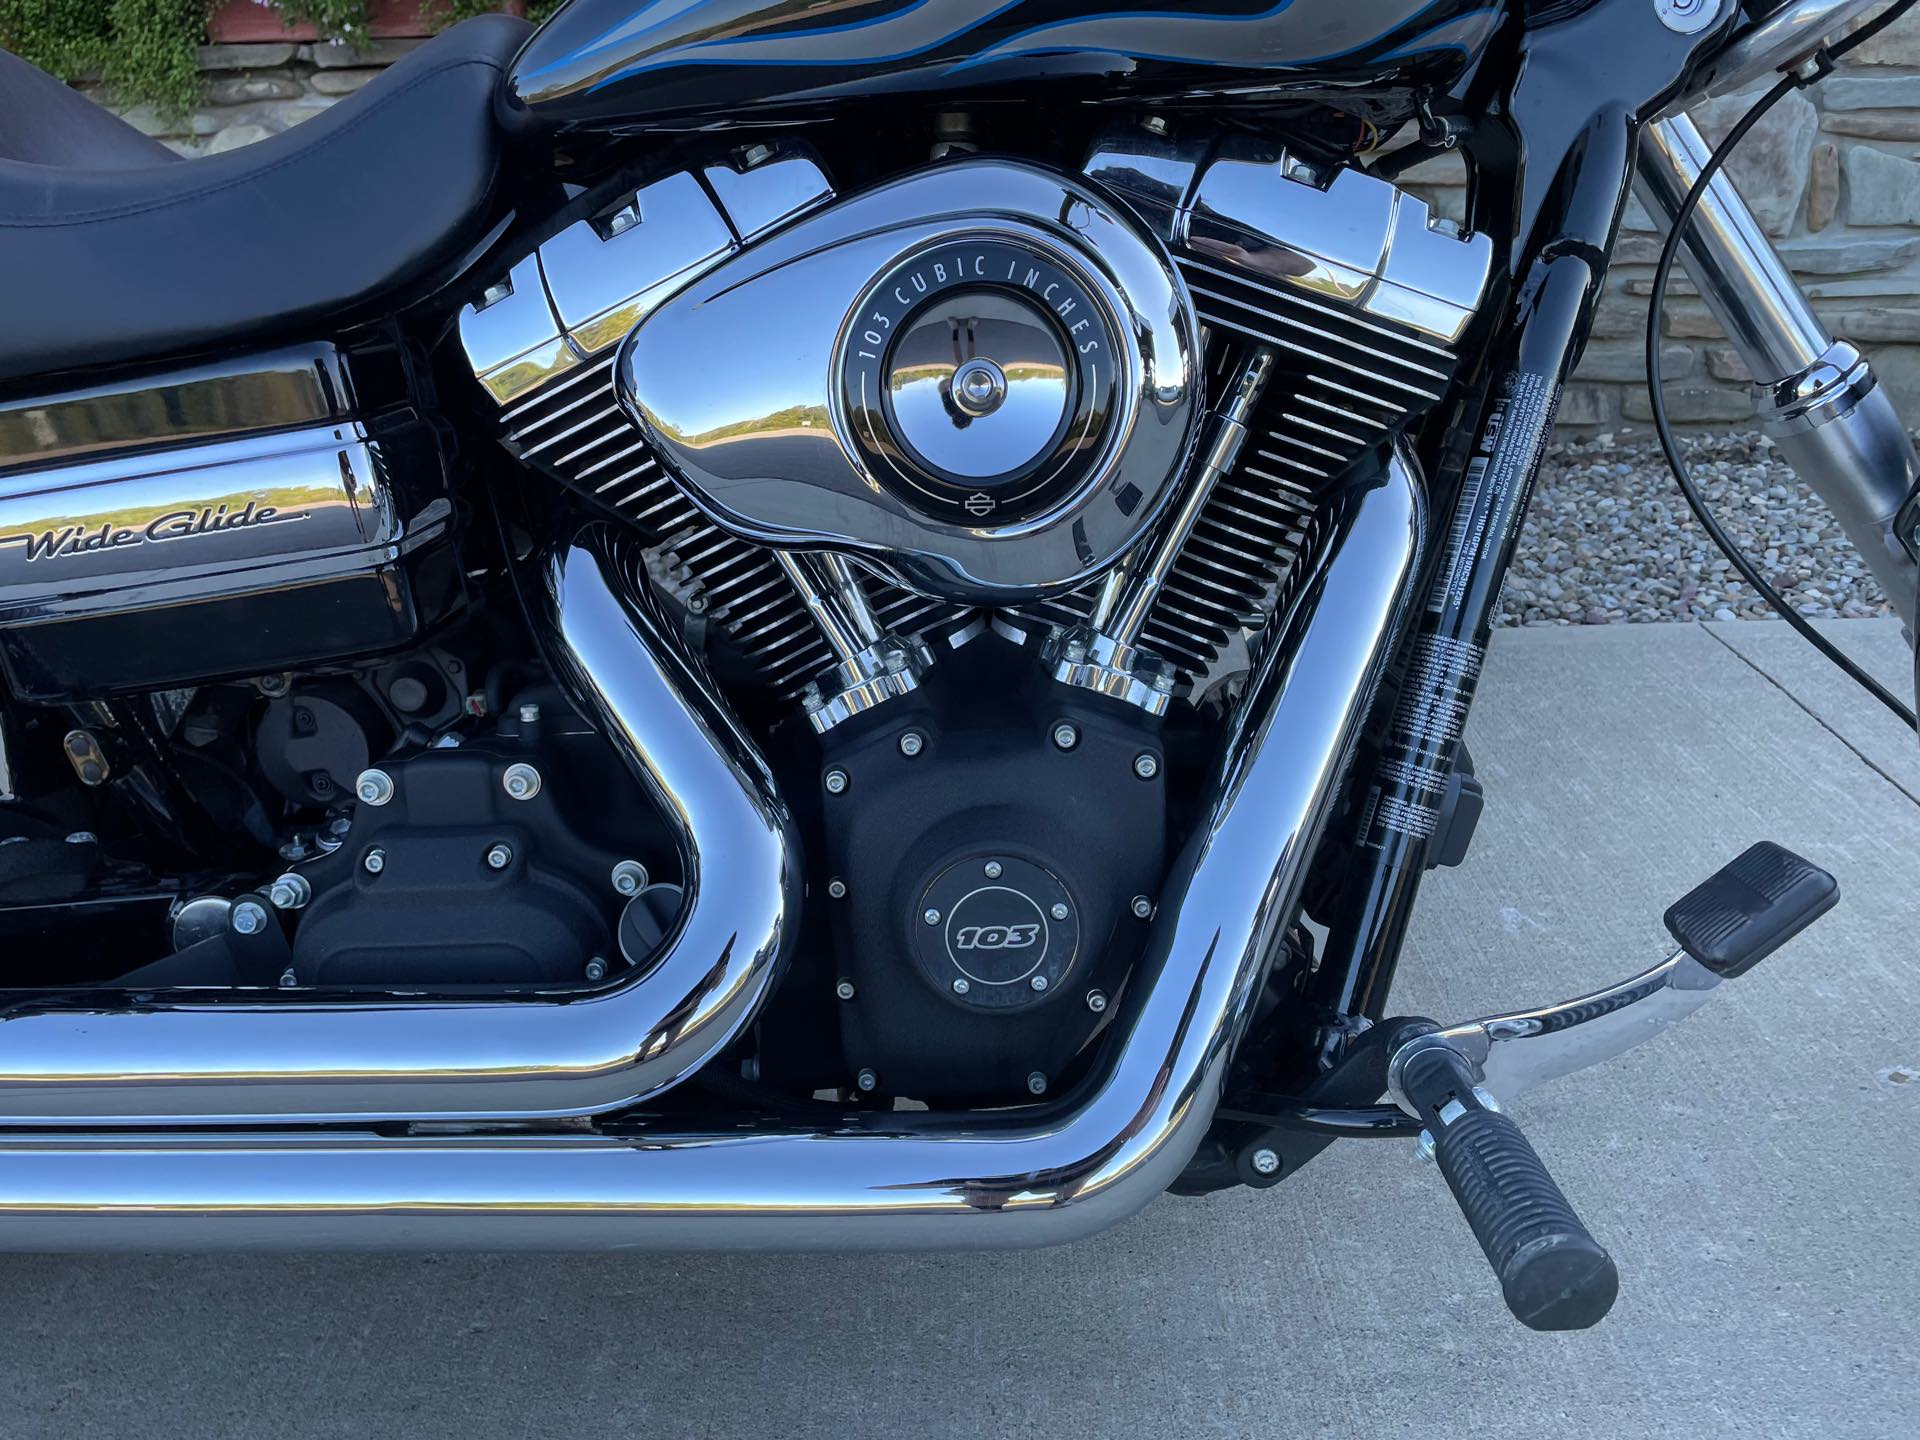 2013 Harley-Davidson Dyna Wide Glide at Arkport Cycles